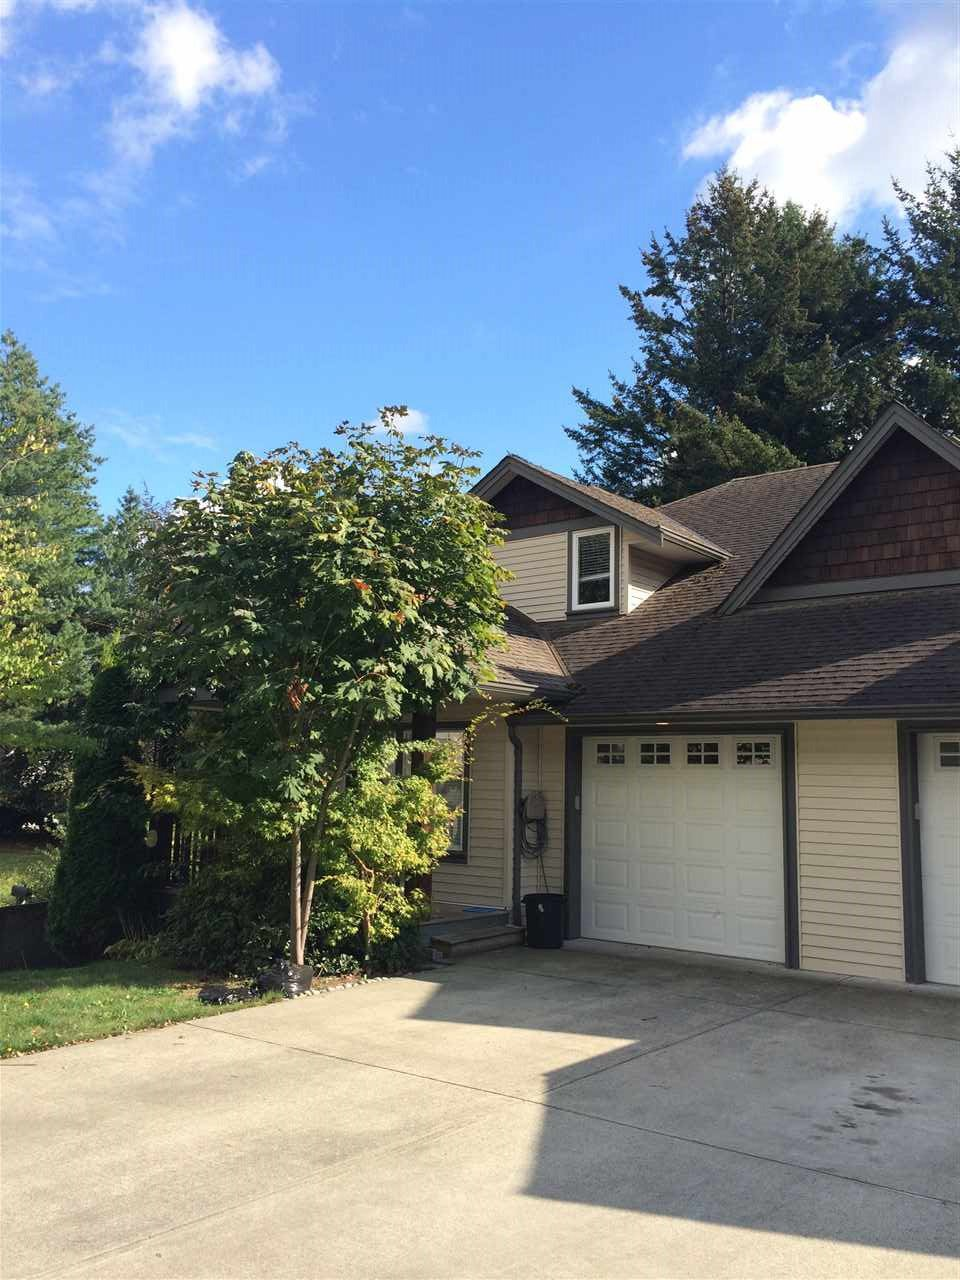 Main Photo: 33508 3RD Avenue in Mission: Mission BC House for sale : MLS®# R2106541